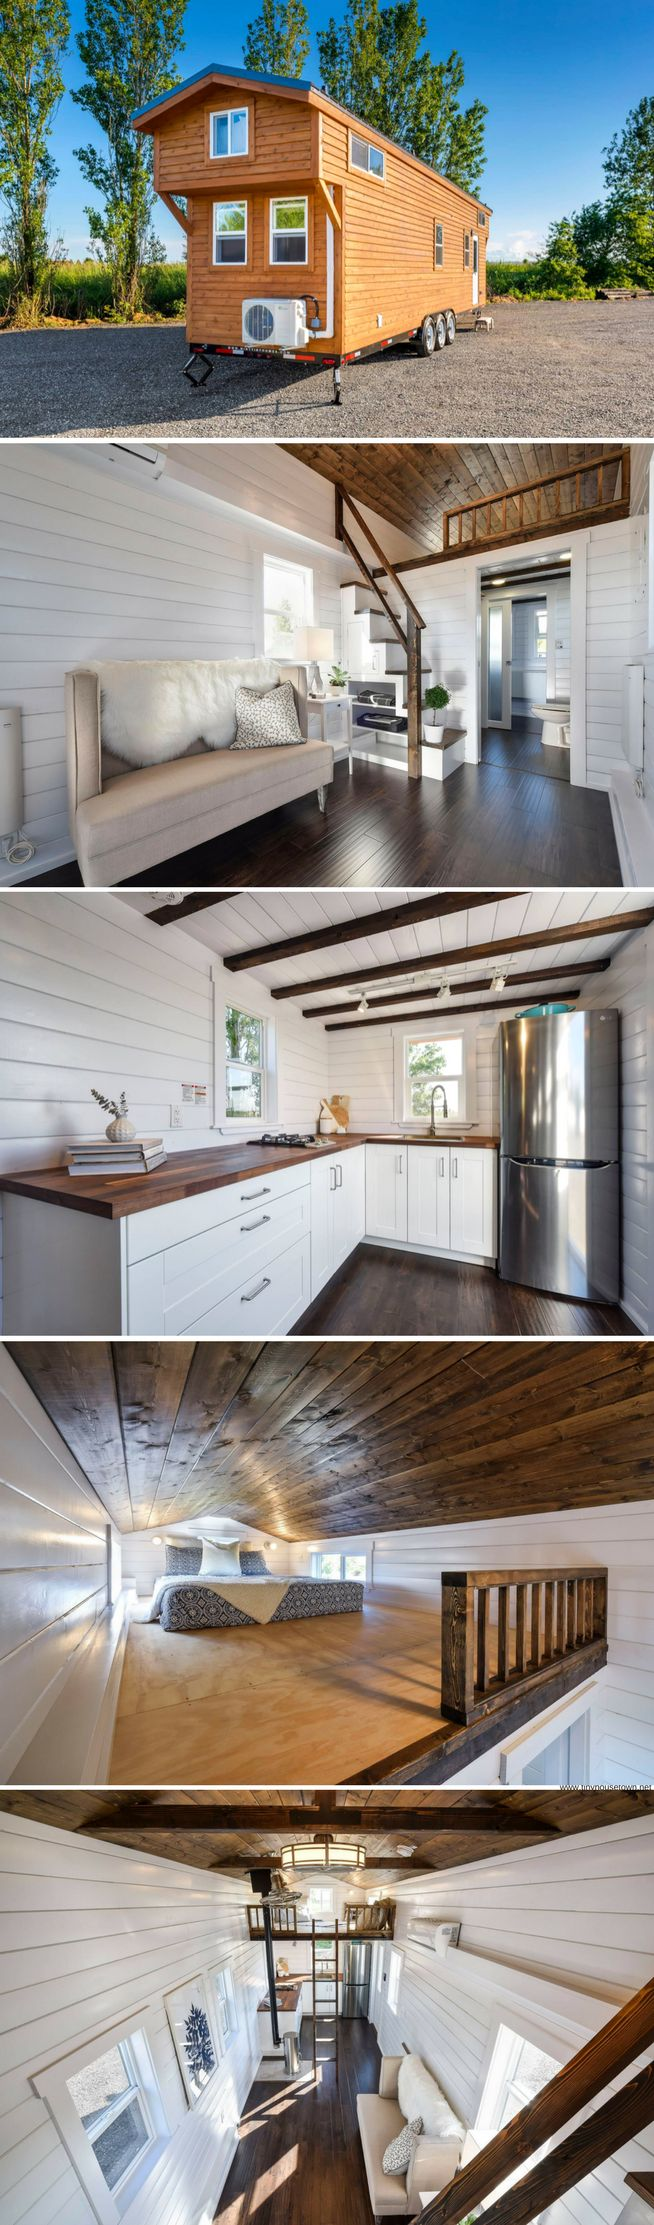 The Loft Edition from Mint Tiny House Company